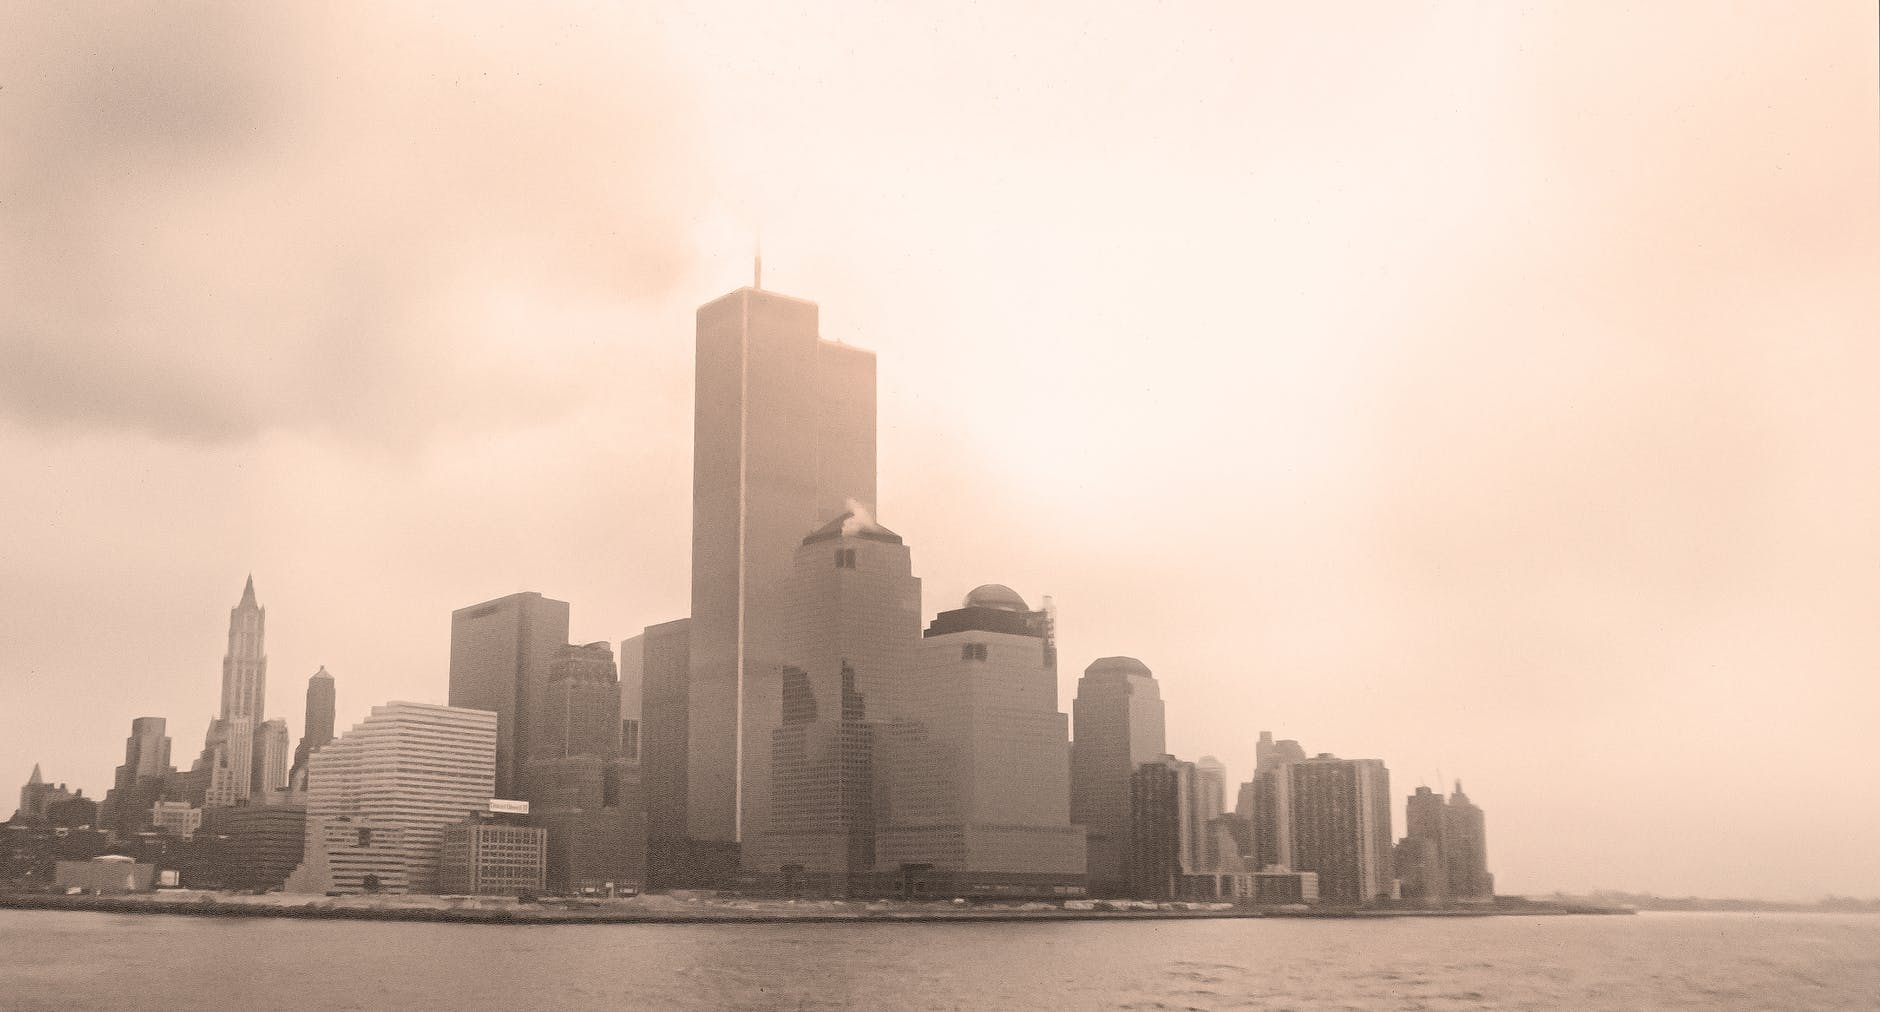 New York pre 9/11 with sun rising behind it